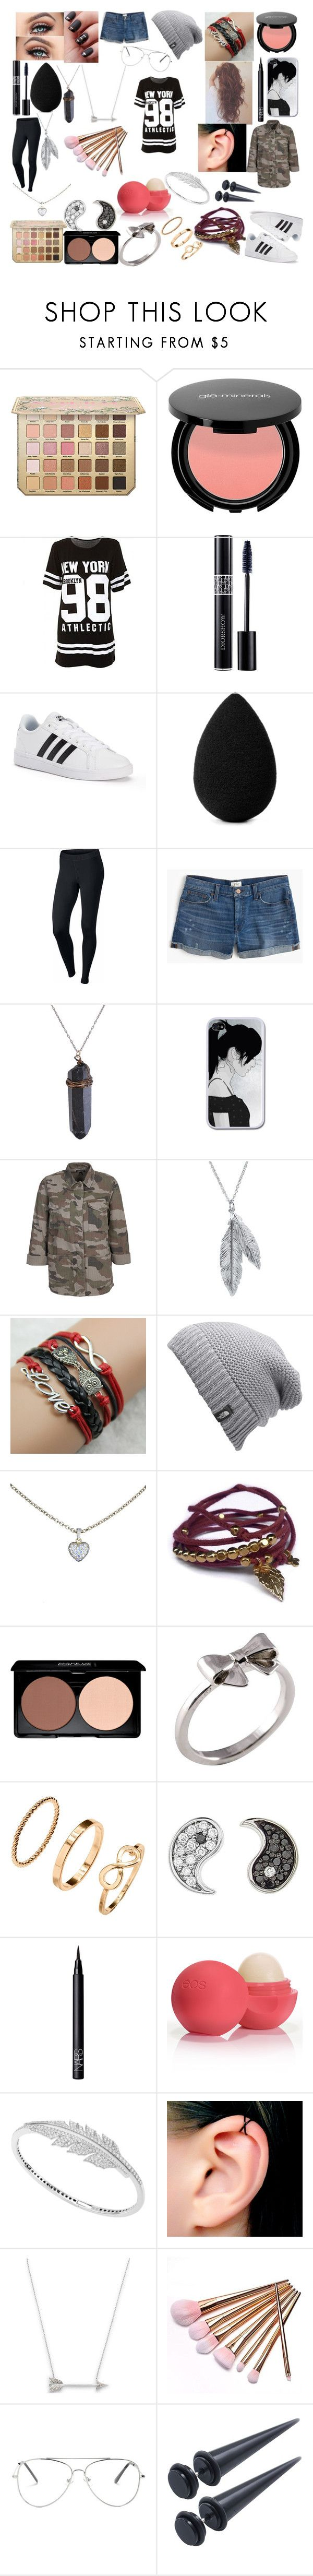 """#97"" by spider-1505 on Polyvore featuring Mode, Christian Dior, adidas, beautyblender, NIKE, J.Crew, Nina B, The North Face, Cartier und Gag & Lou"